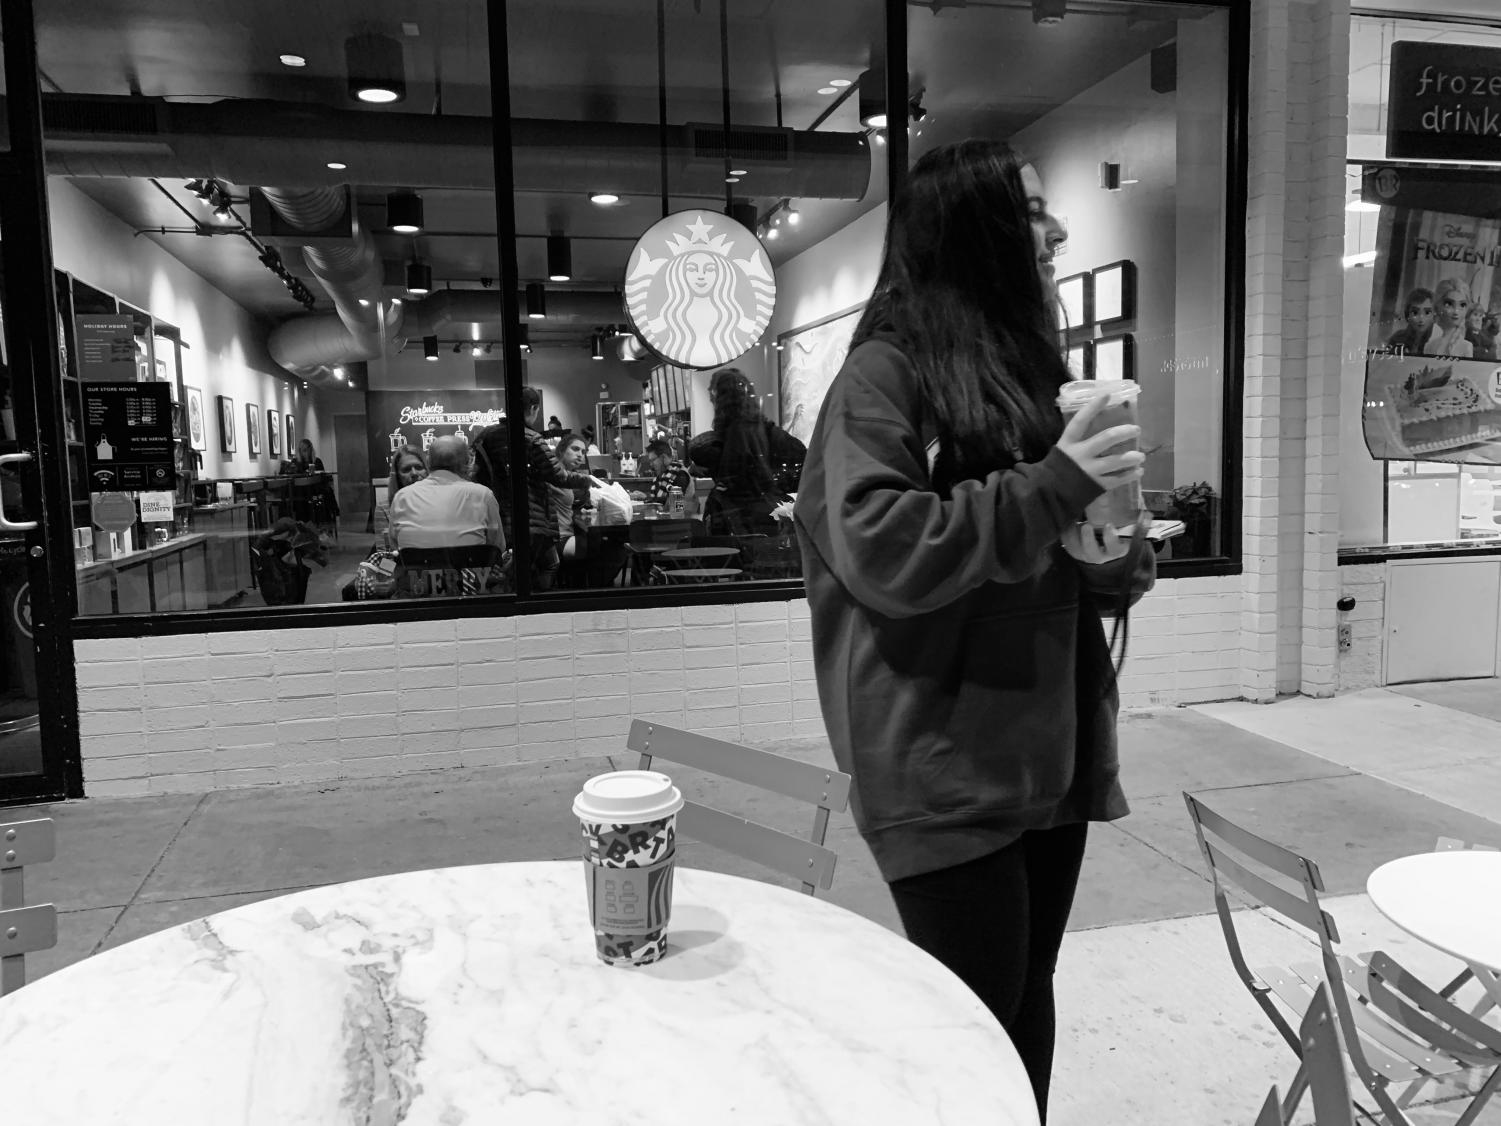 Sophomore Naz Yavuz stands outside of Starbucks at the Cabin John Shopping Center on a chilly night, drinking a hot and iced matcha latte from Starbucks.